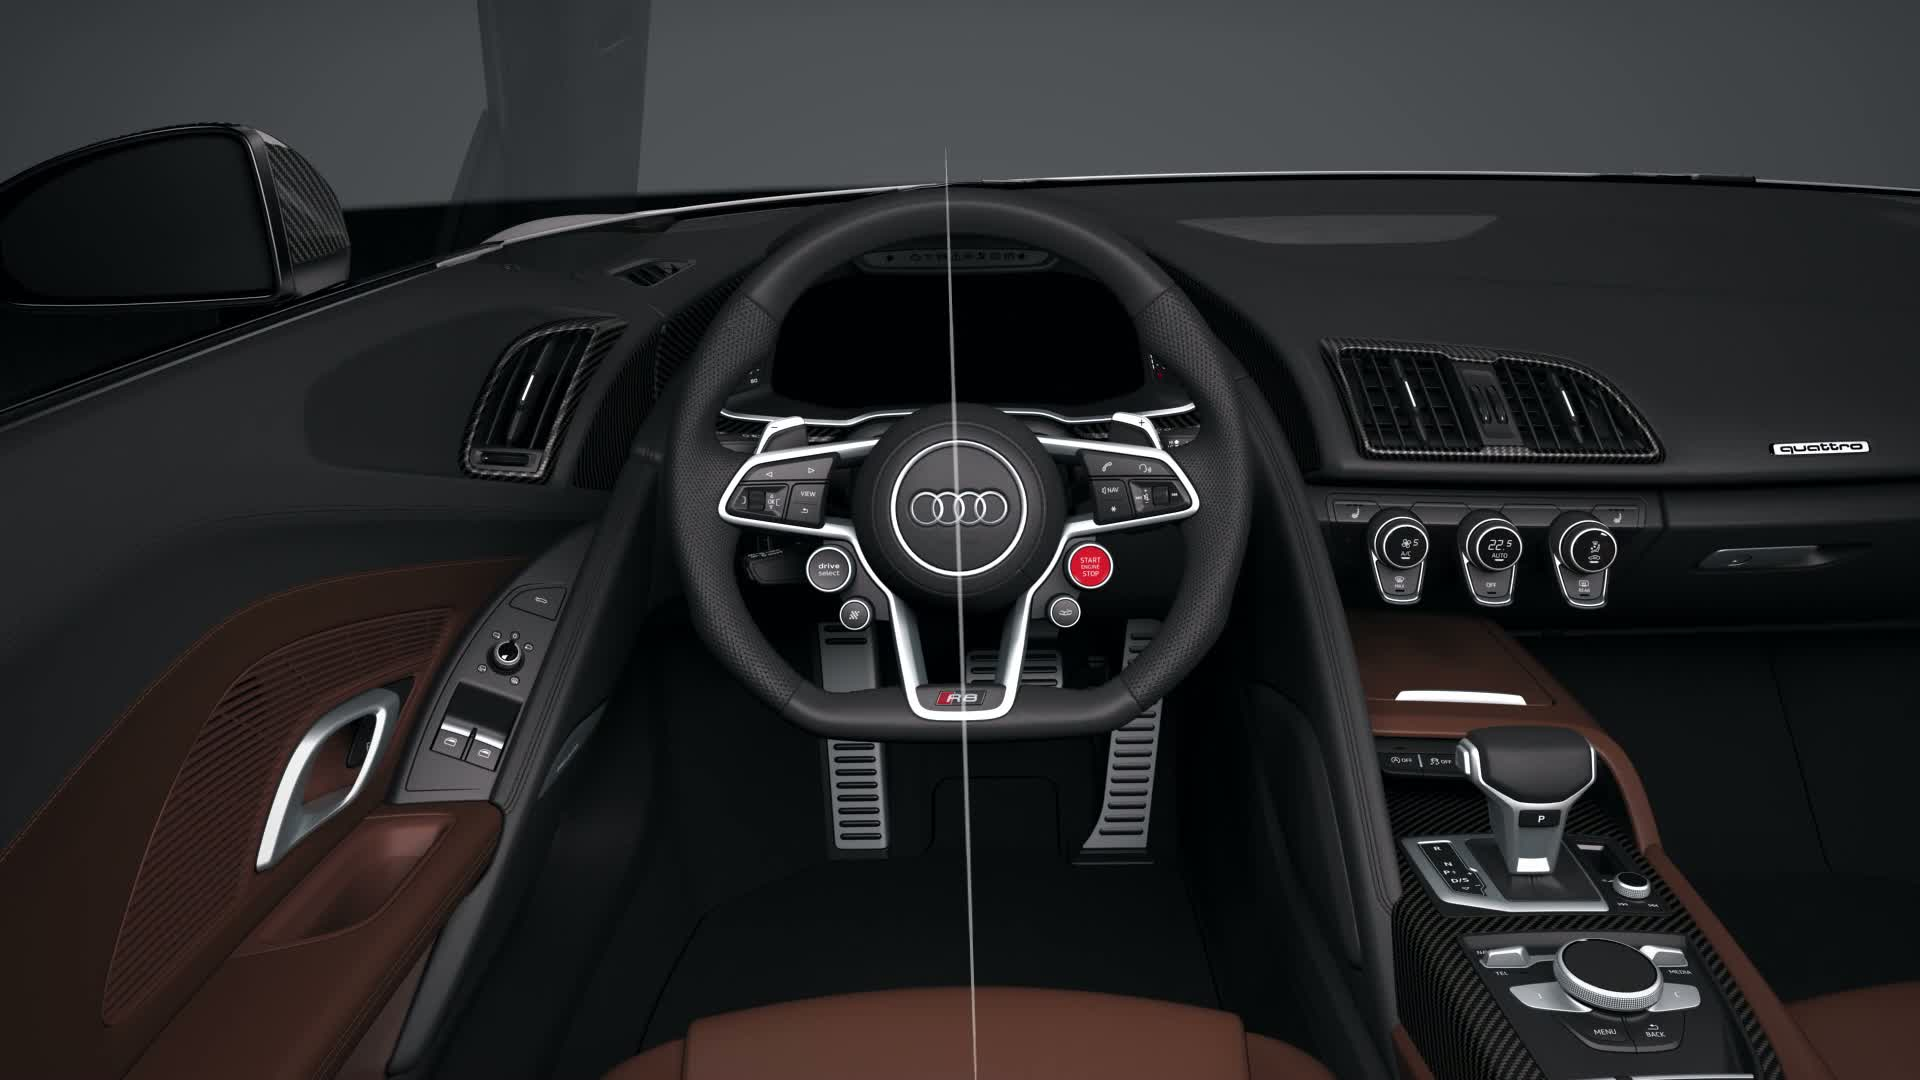 Audi R8 Interior Animation